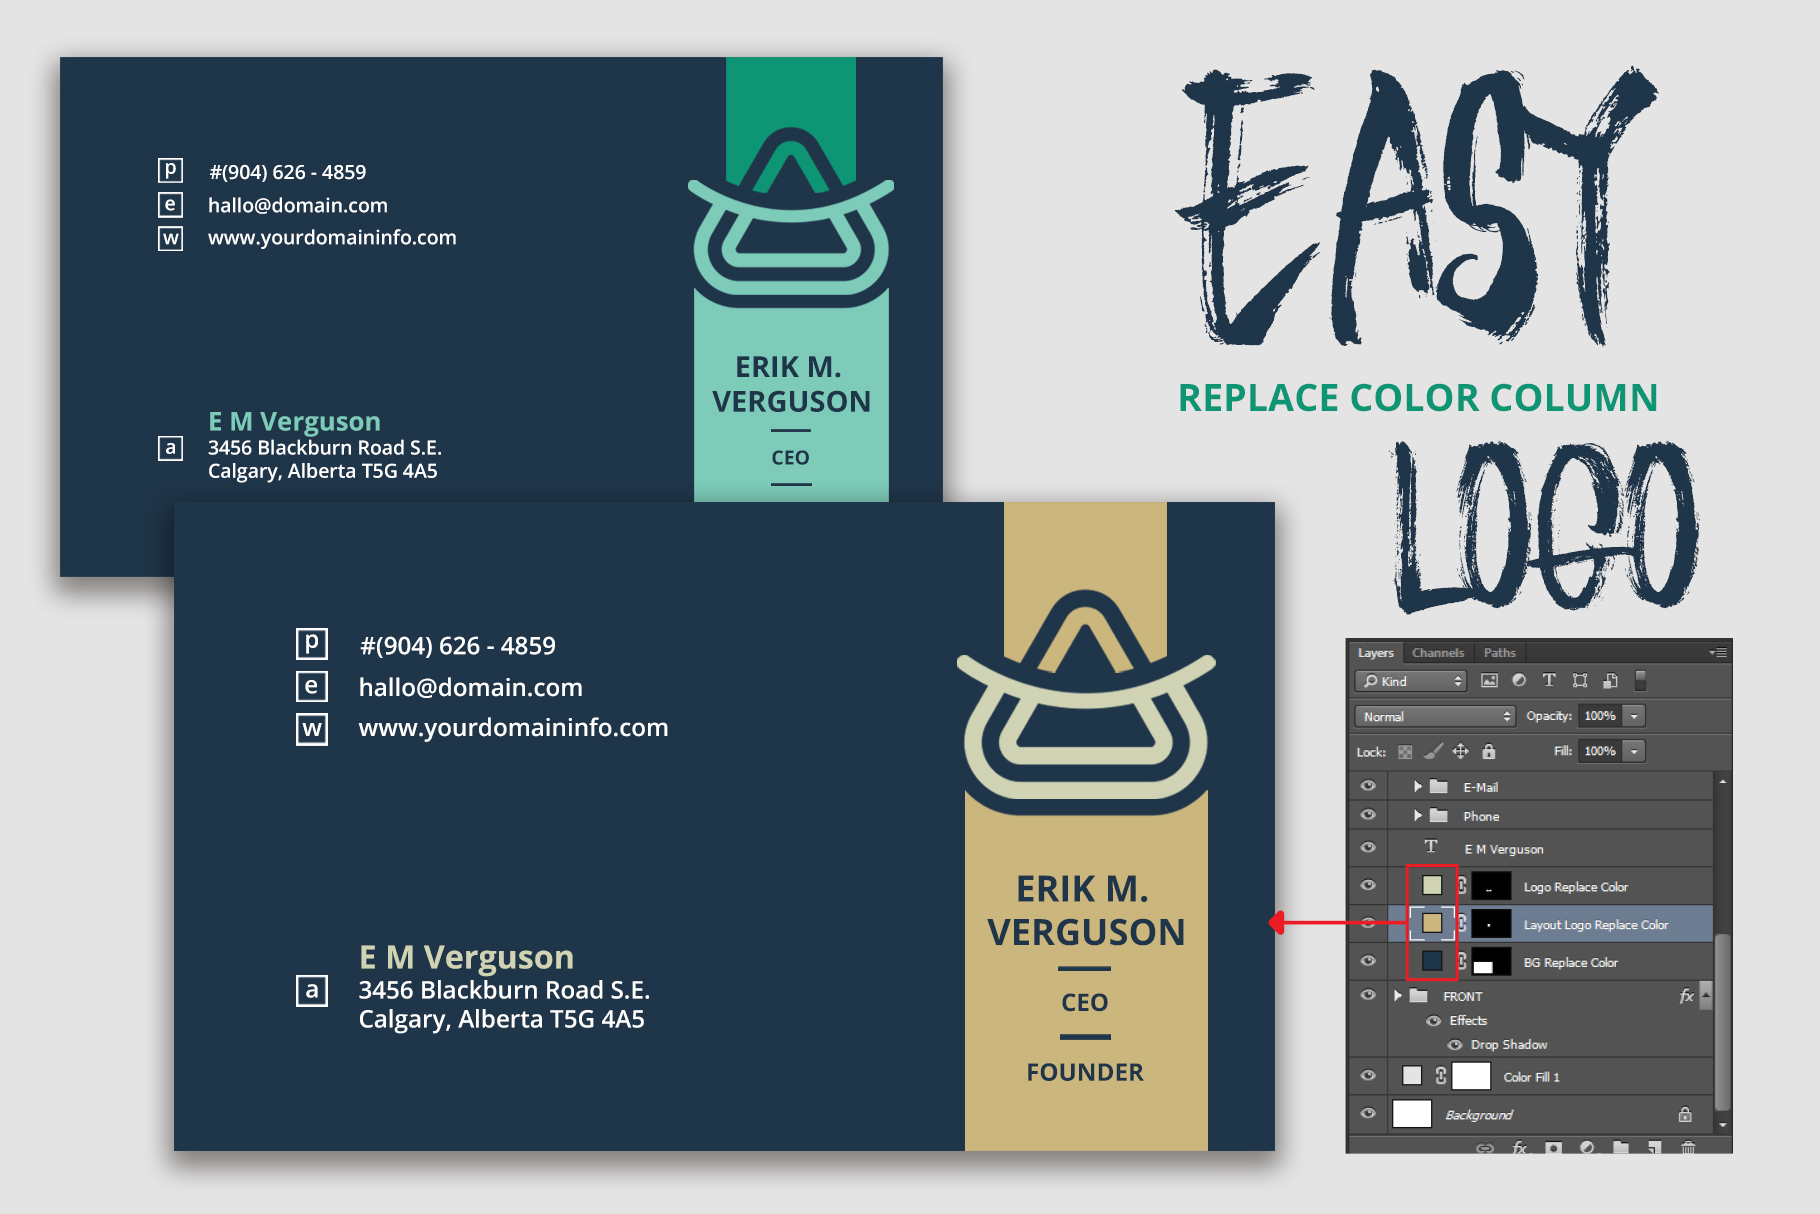 Smart business card template by ndroadv design bundles smart business card template example image 2 reheart Choice Image